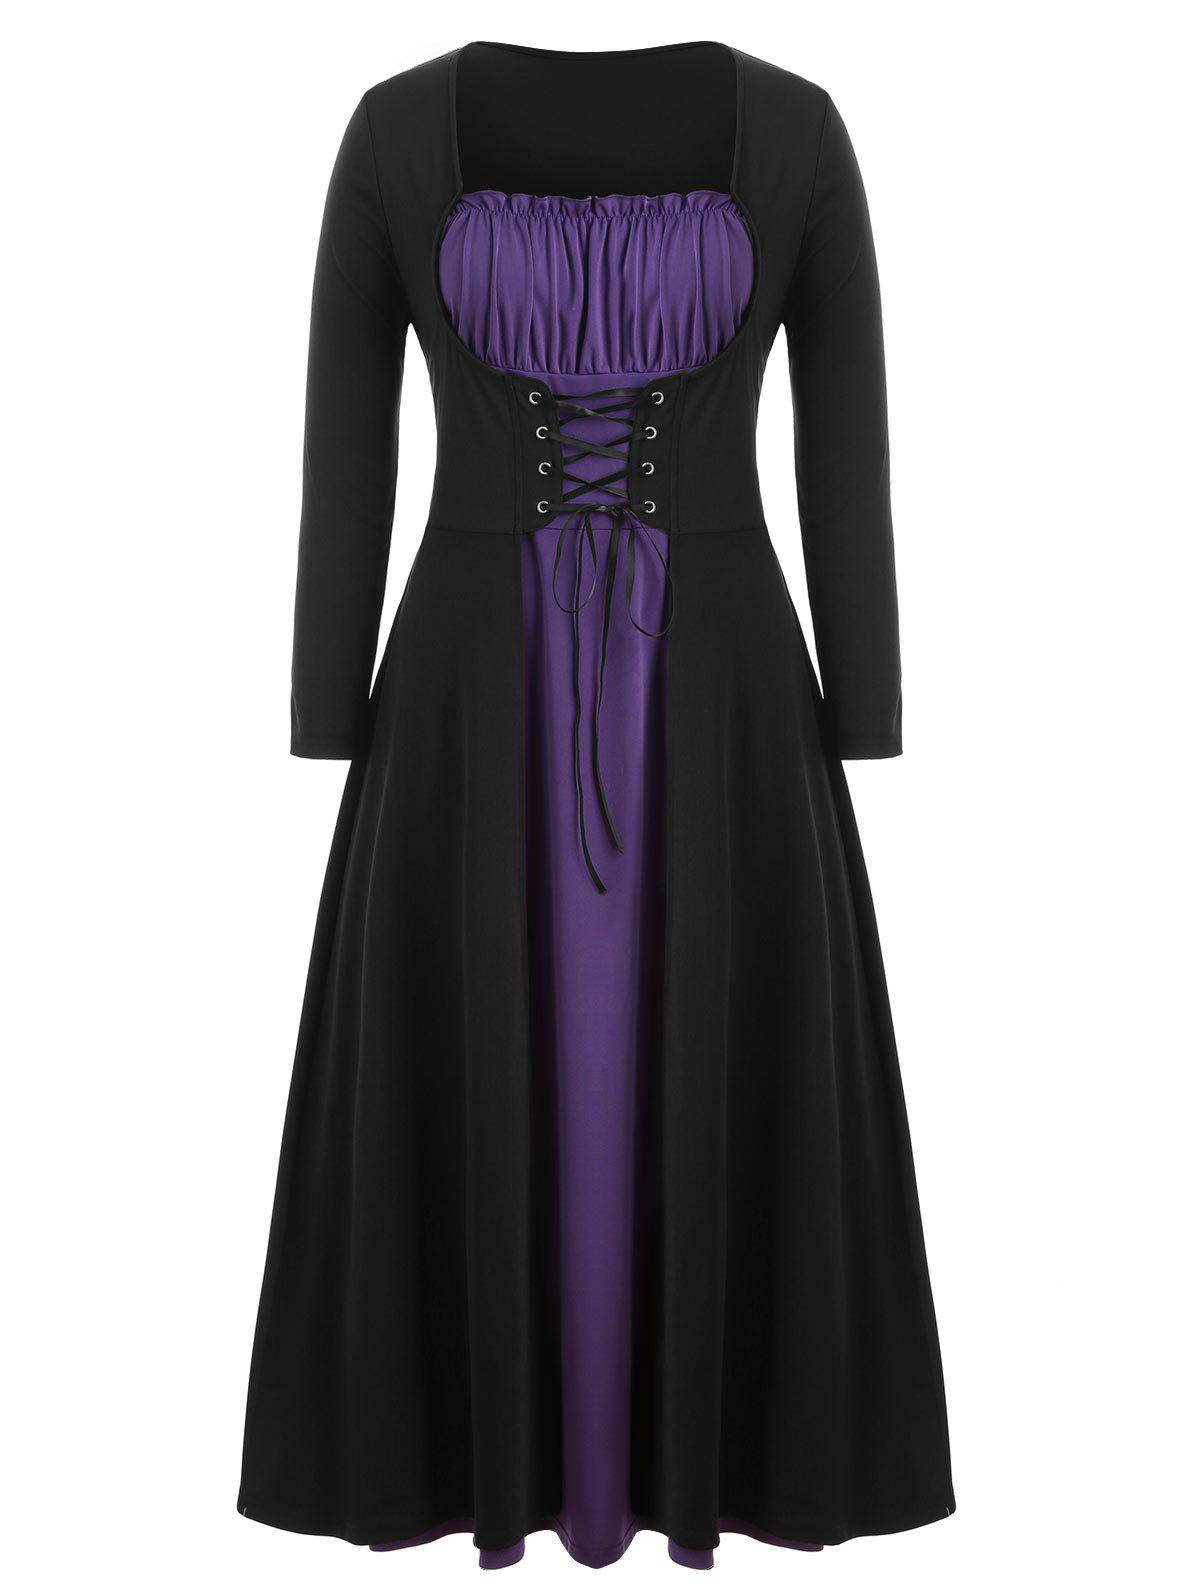 New Plus Size Two Tone Lace Up Maxi Halloween Dress